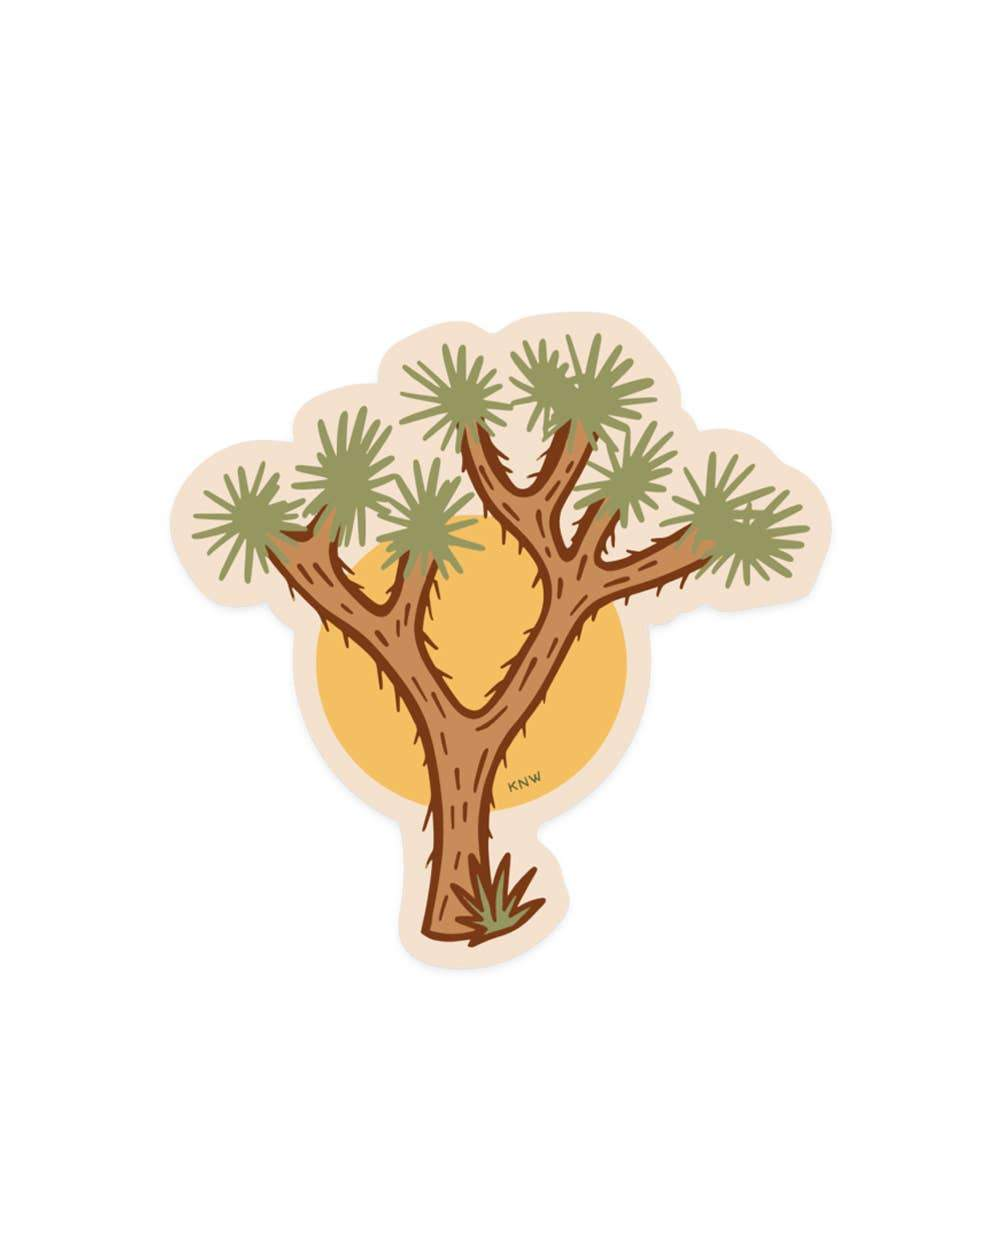 Joshua Tree - Sticker - for sale by Succy Crafts